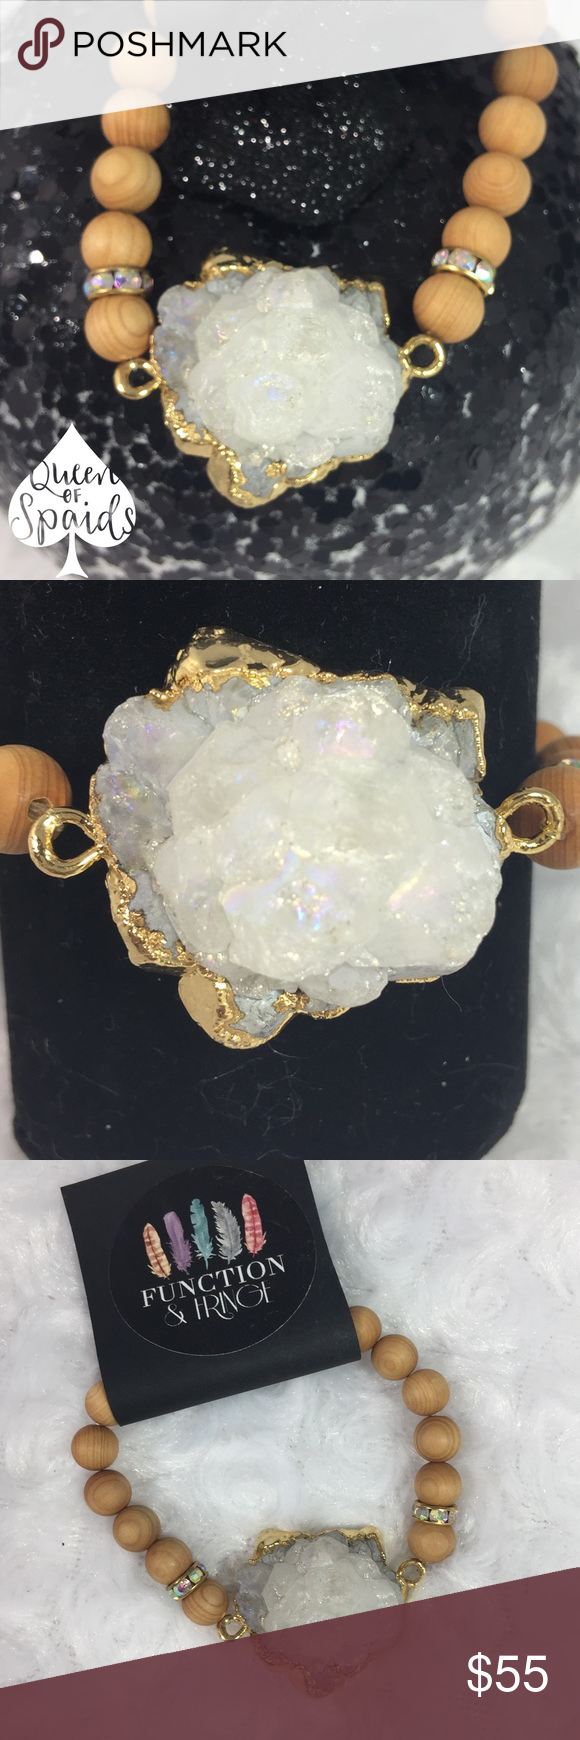 Rainbow Solar Quartz Bracelet - Style 2 This is a one-of-a-kind white Rainbow Solar Quartz Bracelet. The pendant is gold-plated and surrounded by amazingly fragrant Sandalwood beads, rhinestone spacers, and a gold-plated bead. I have a few of these, but d